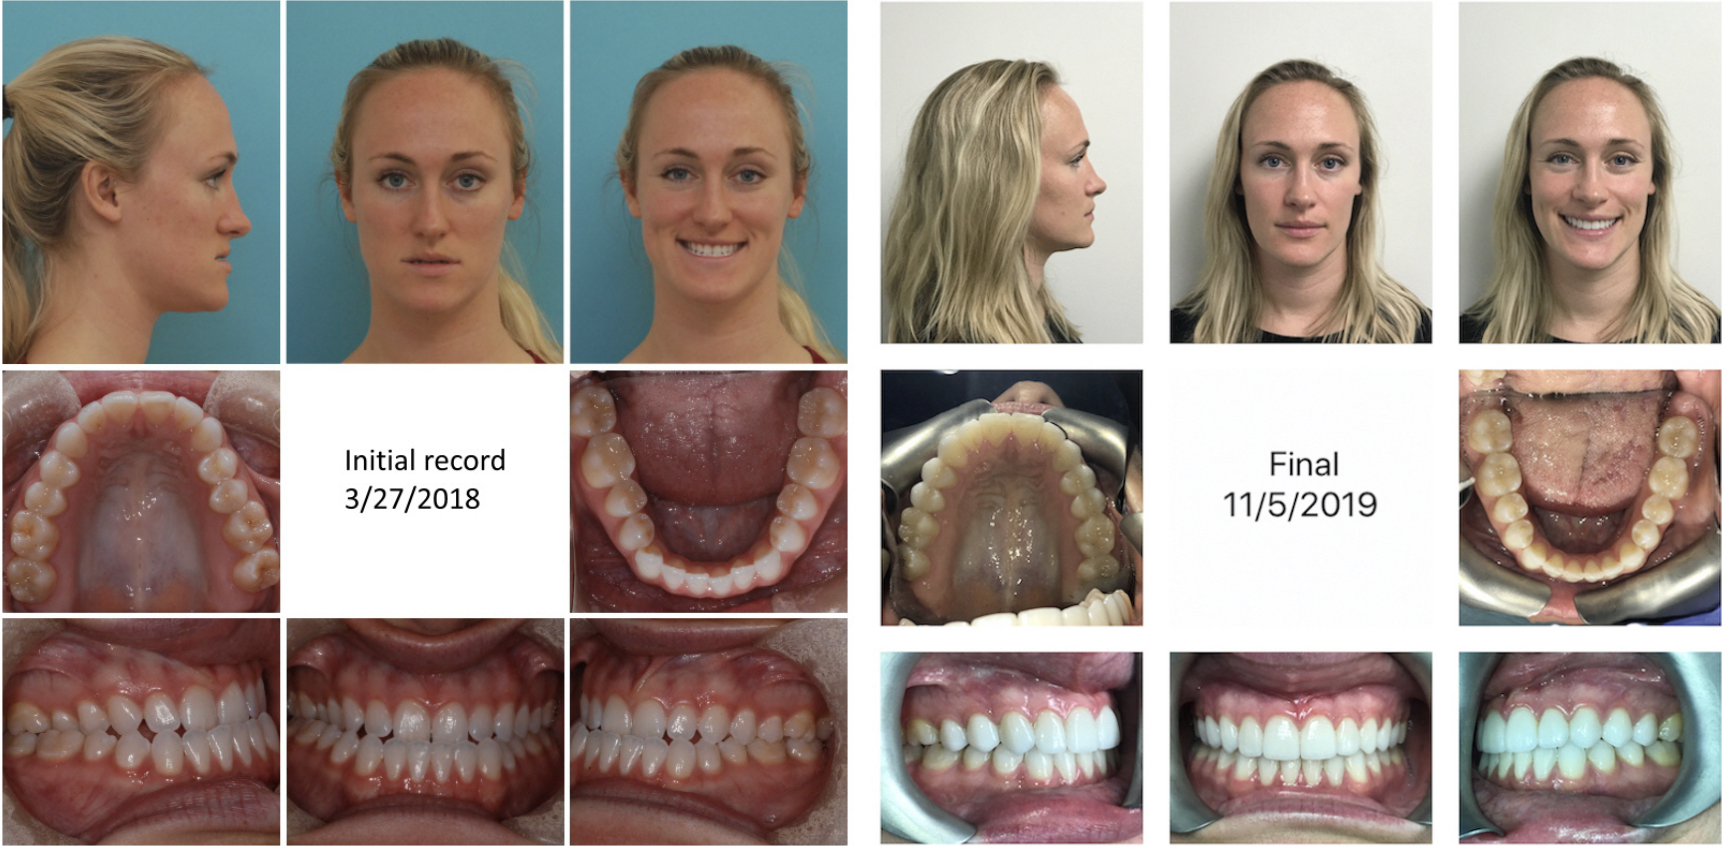 Before And After Sliding Genioplasty